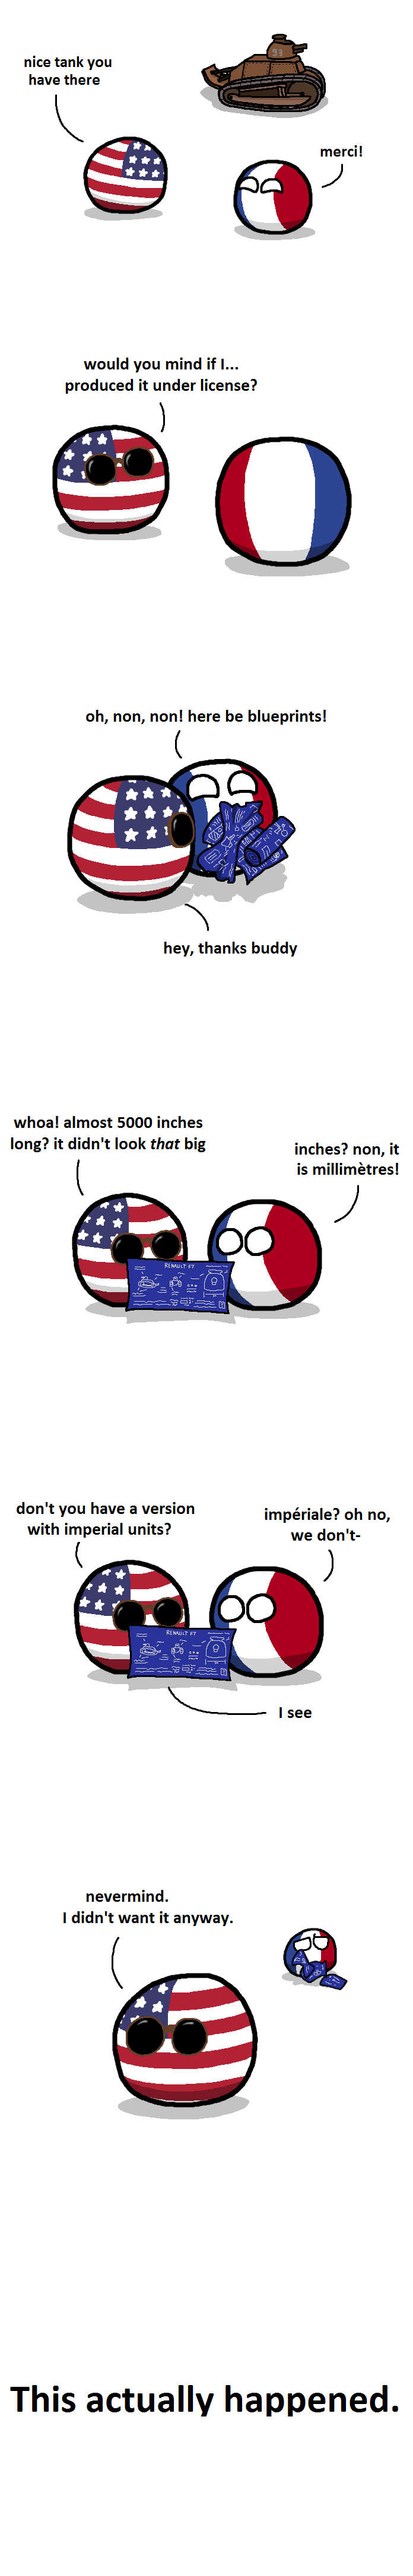 Daily Polandball: The Metric System.